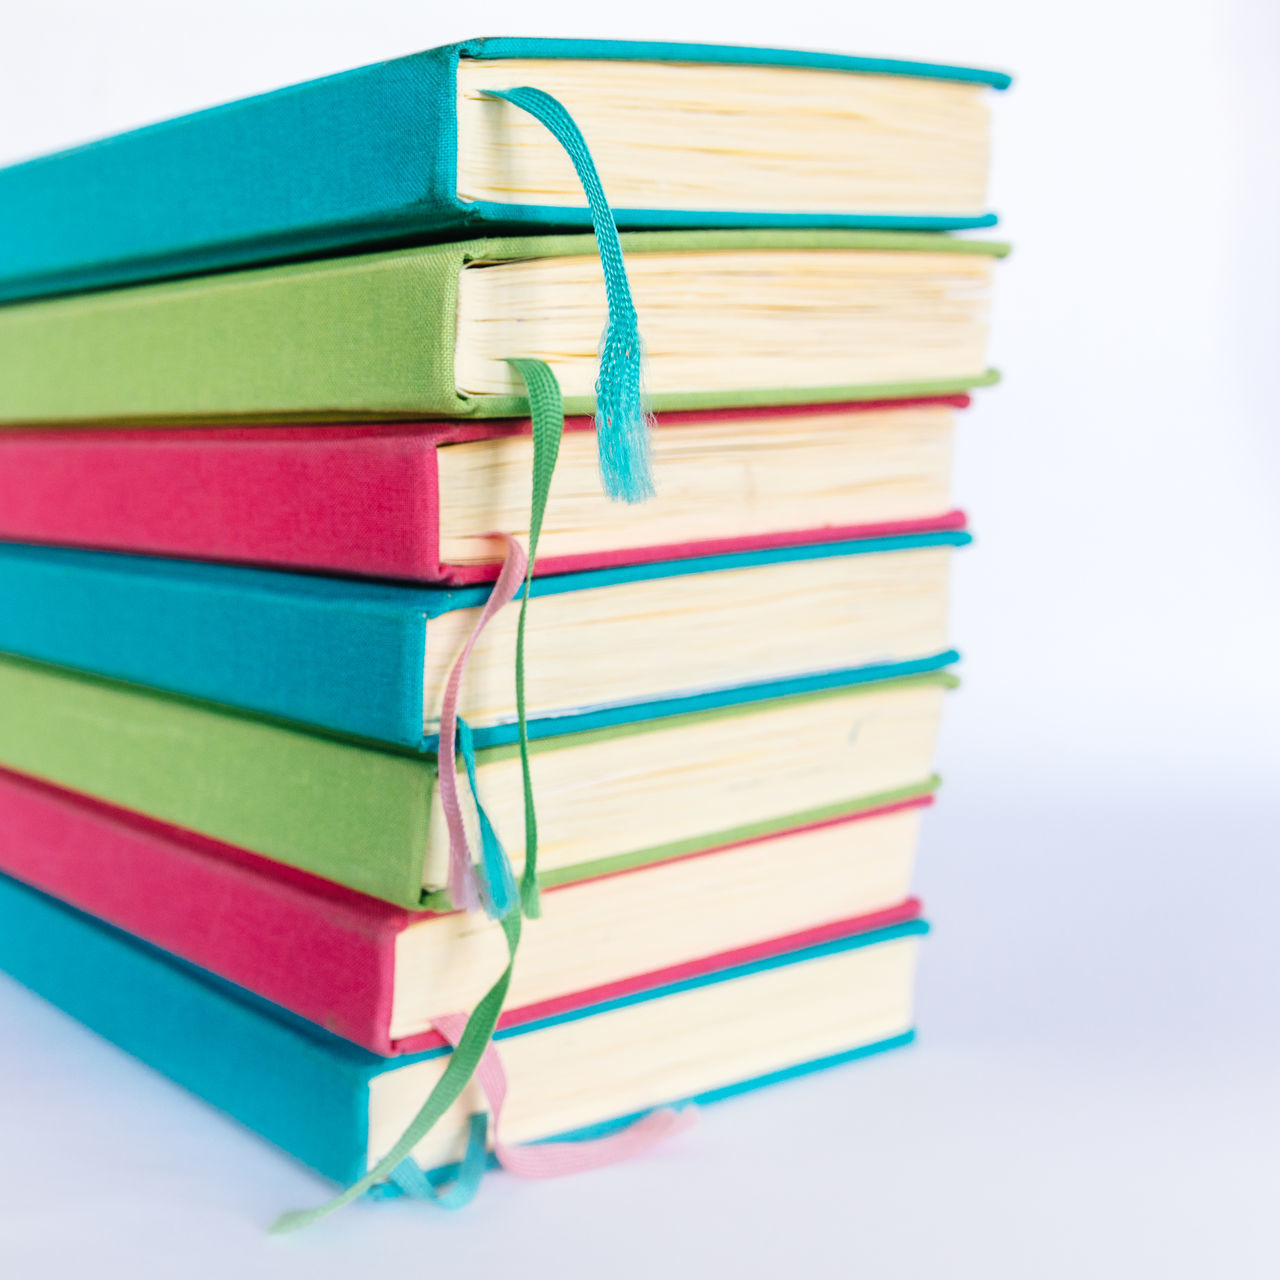 Colorful Books Blue Books Close-up Colorful Colors Cyan Day Education Educational Green Learning LearningEveryday Multi Colored No People Office Supply Pink Reading Reading Books Reading Time Stack Study Hard Study Time Studying White Background